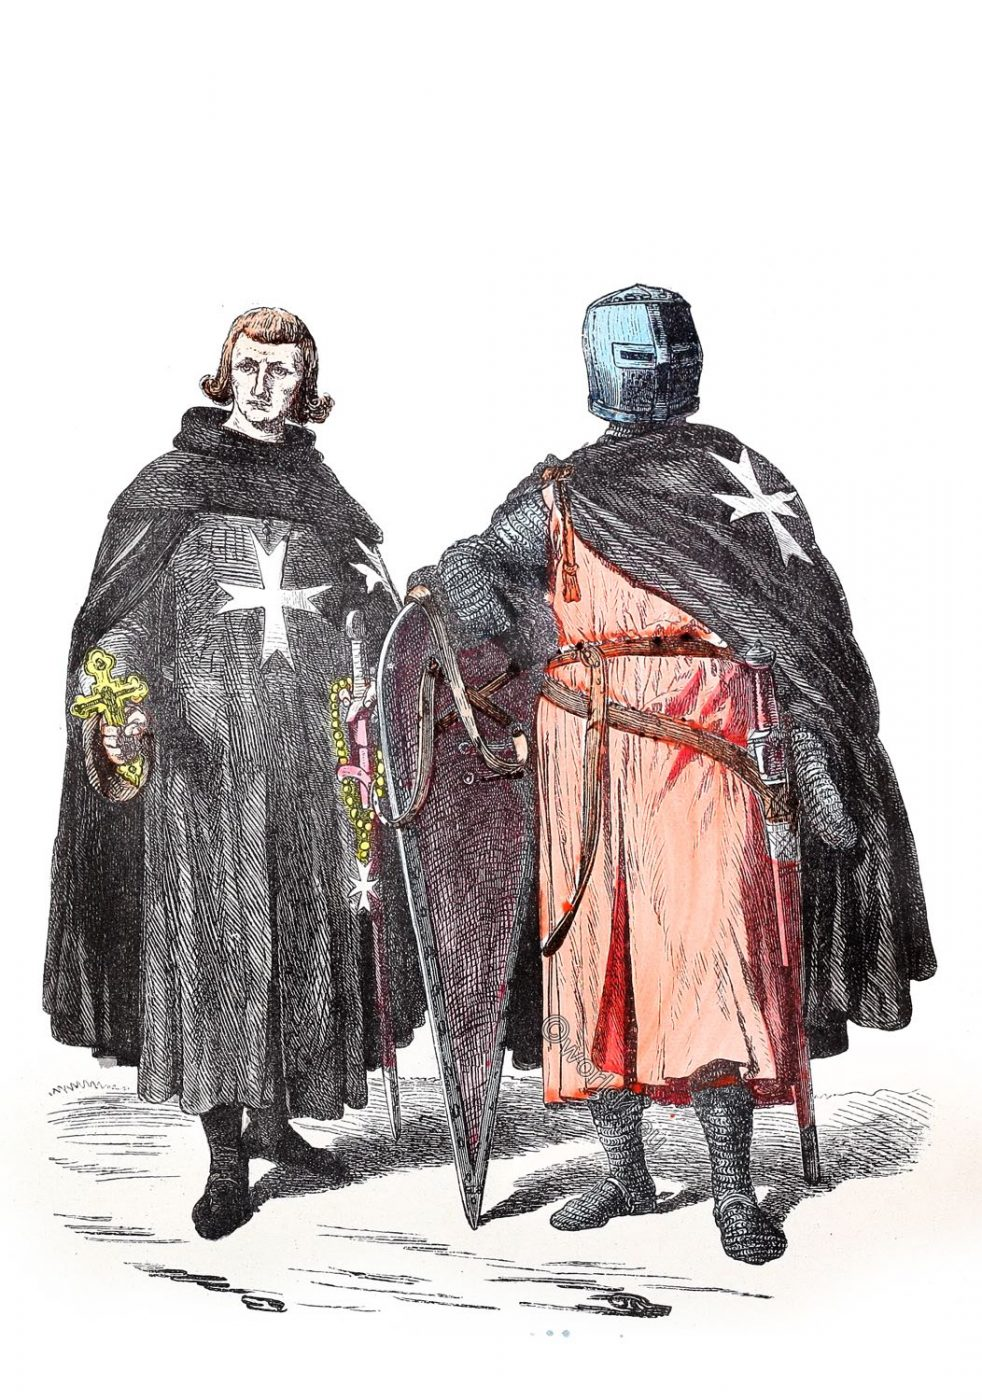 Knights, hospitaller, Order, St John, Malta, 11th century, Crusade, Middle ages,